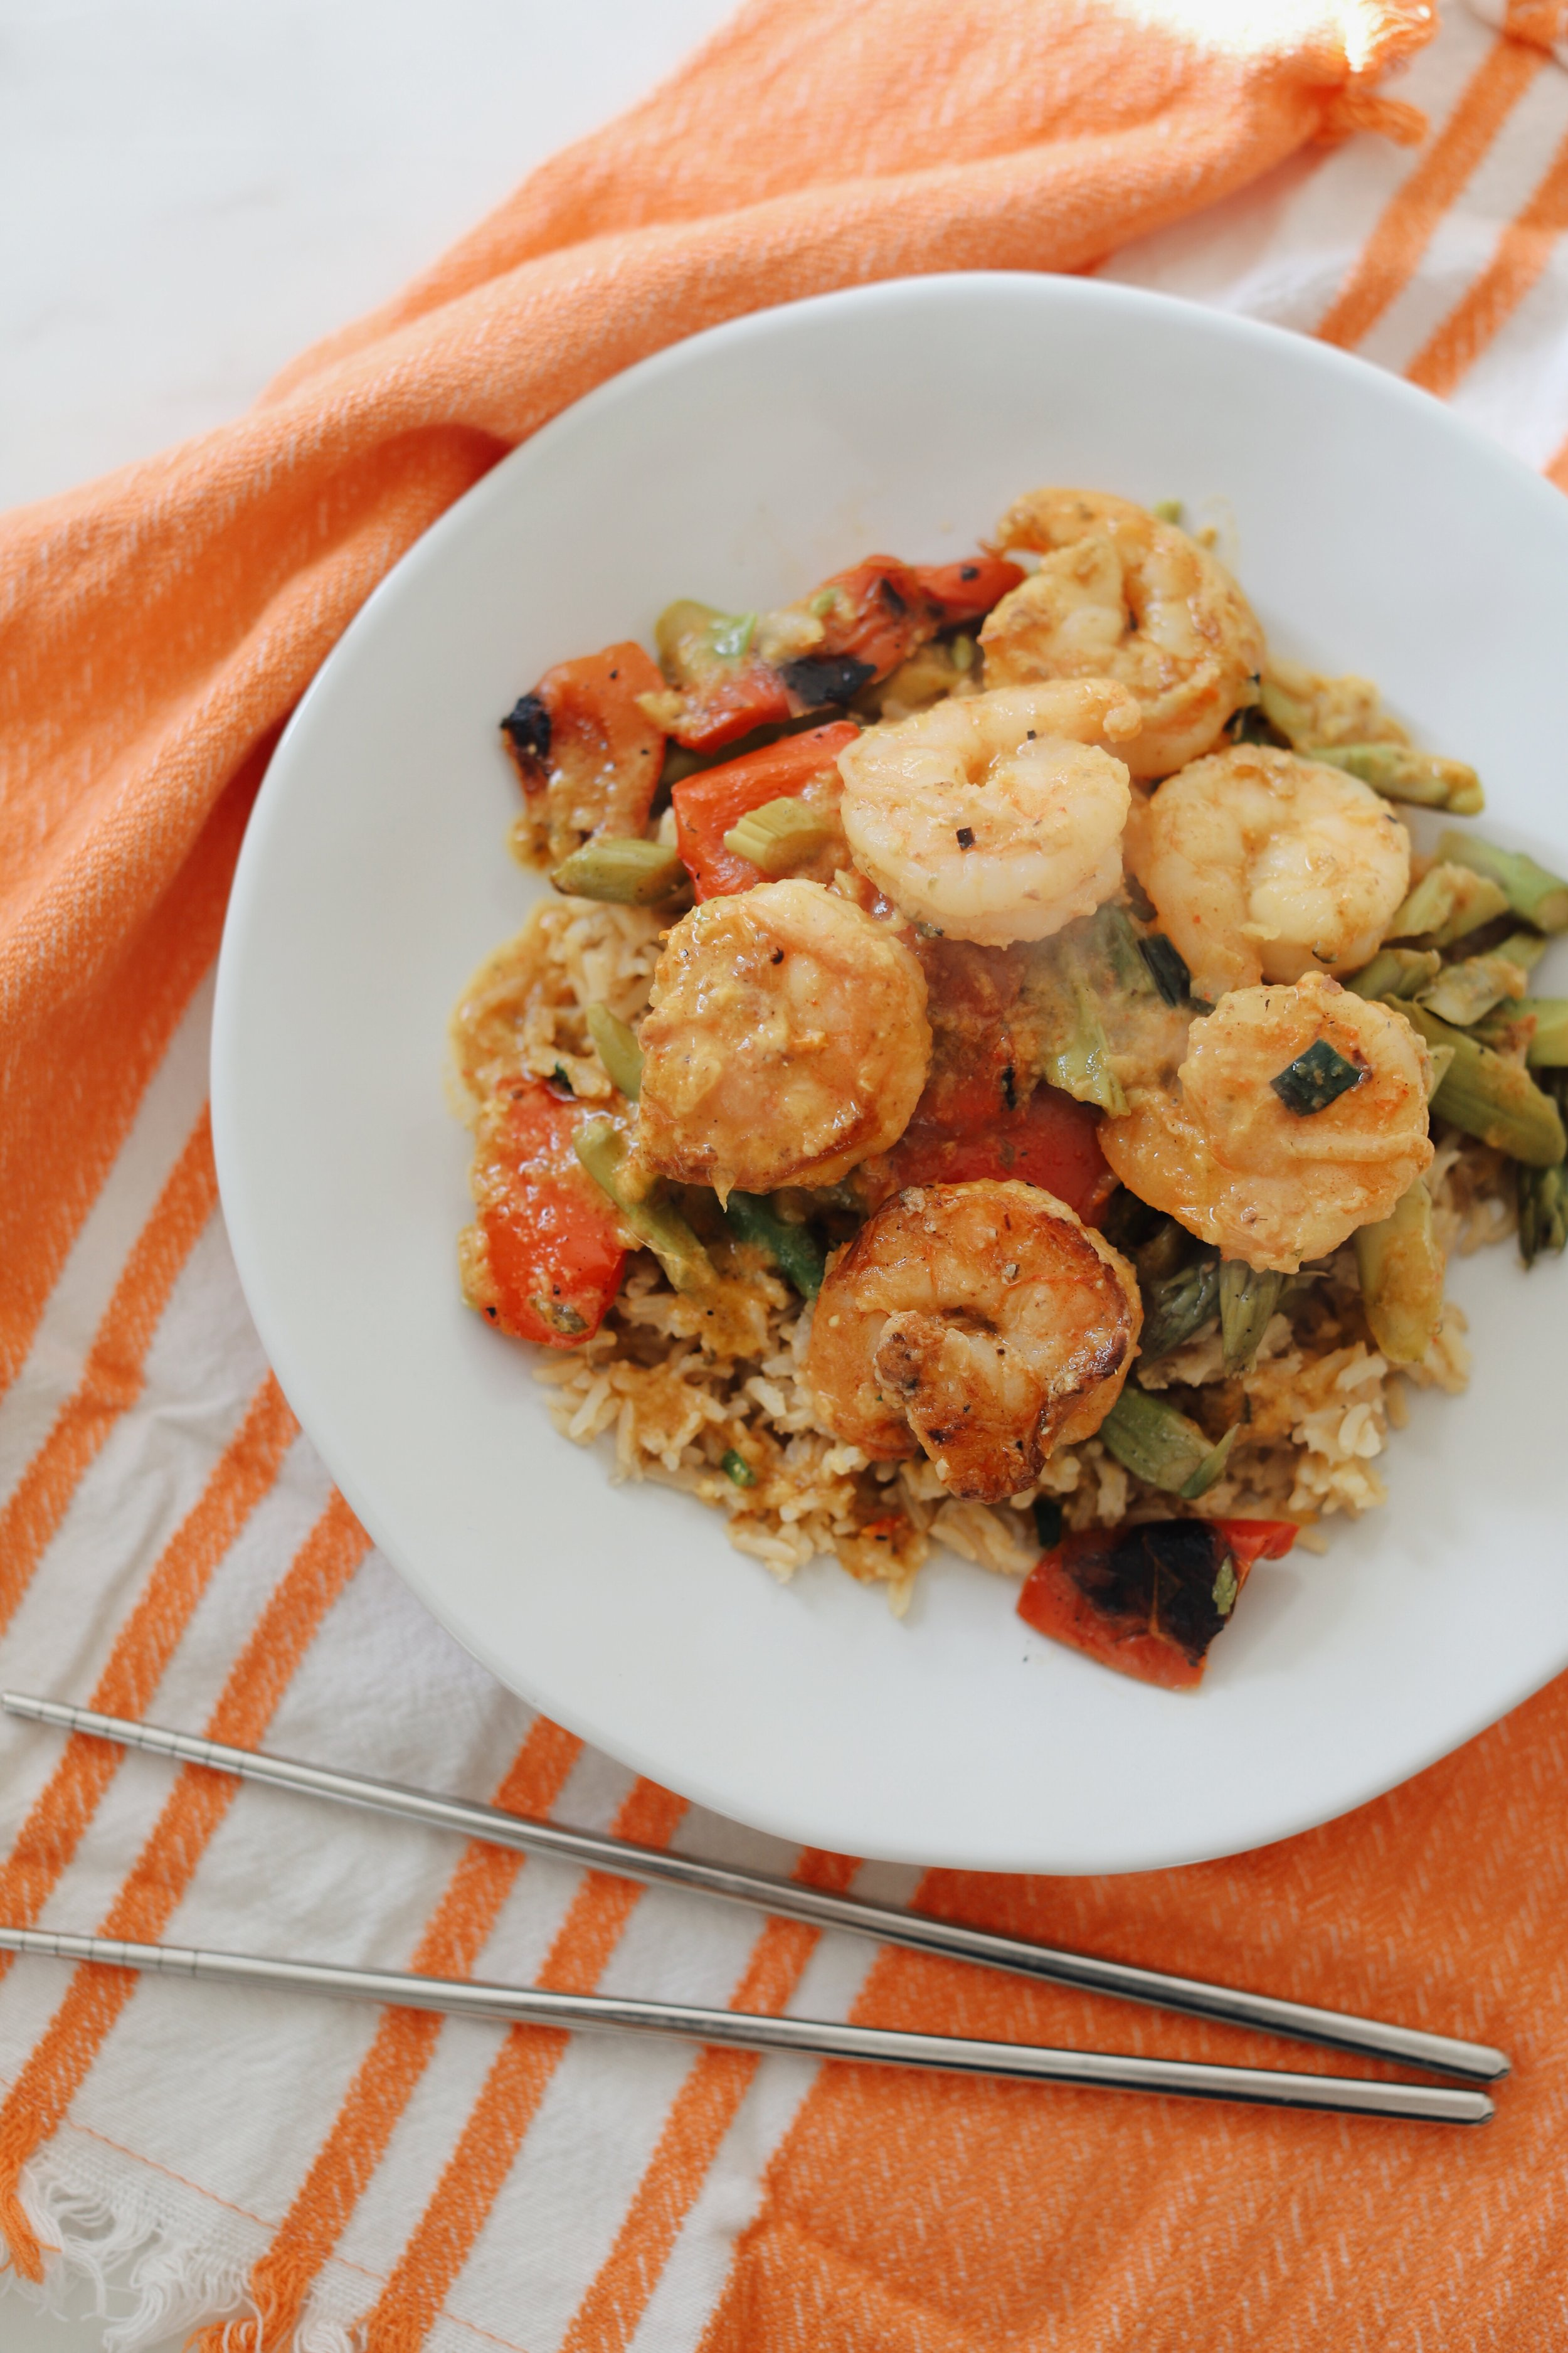 RealEats Red Curry Shrimp with Brown Rice and Asparagus – shrimp were jumbo and didn't shrink when boiled!